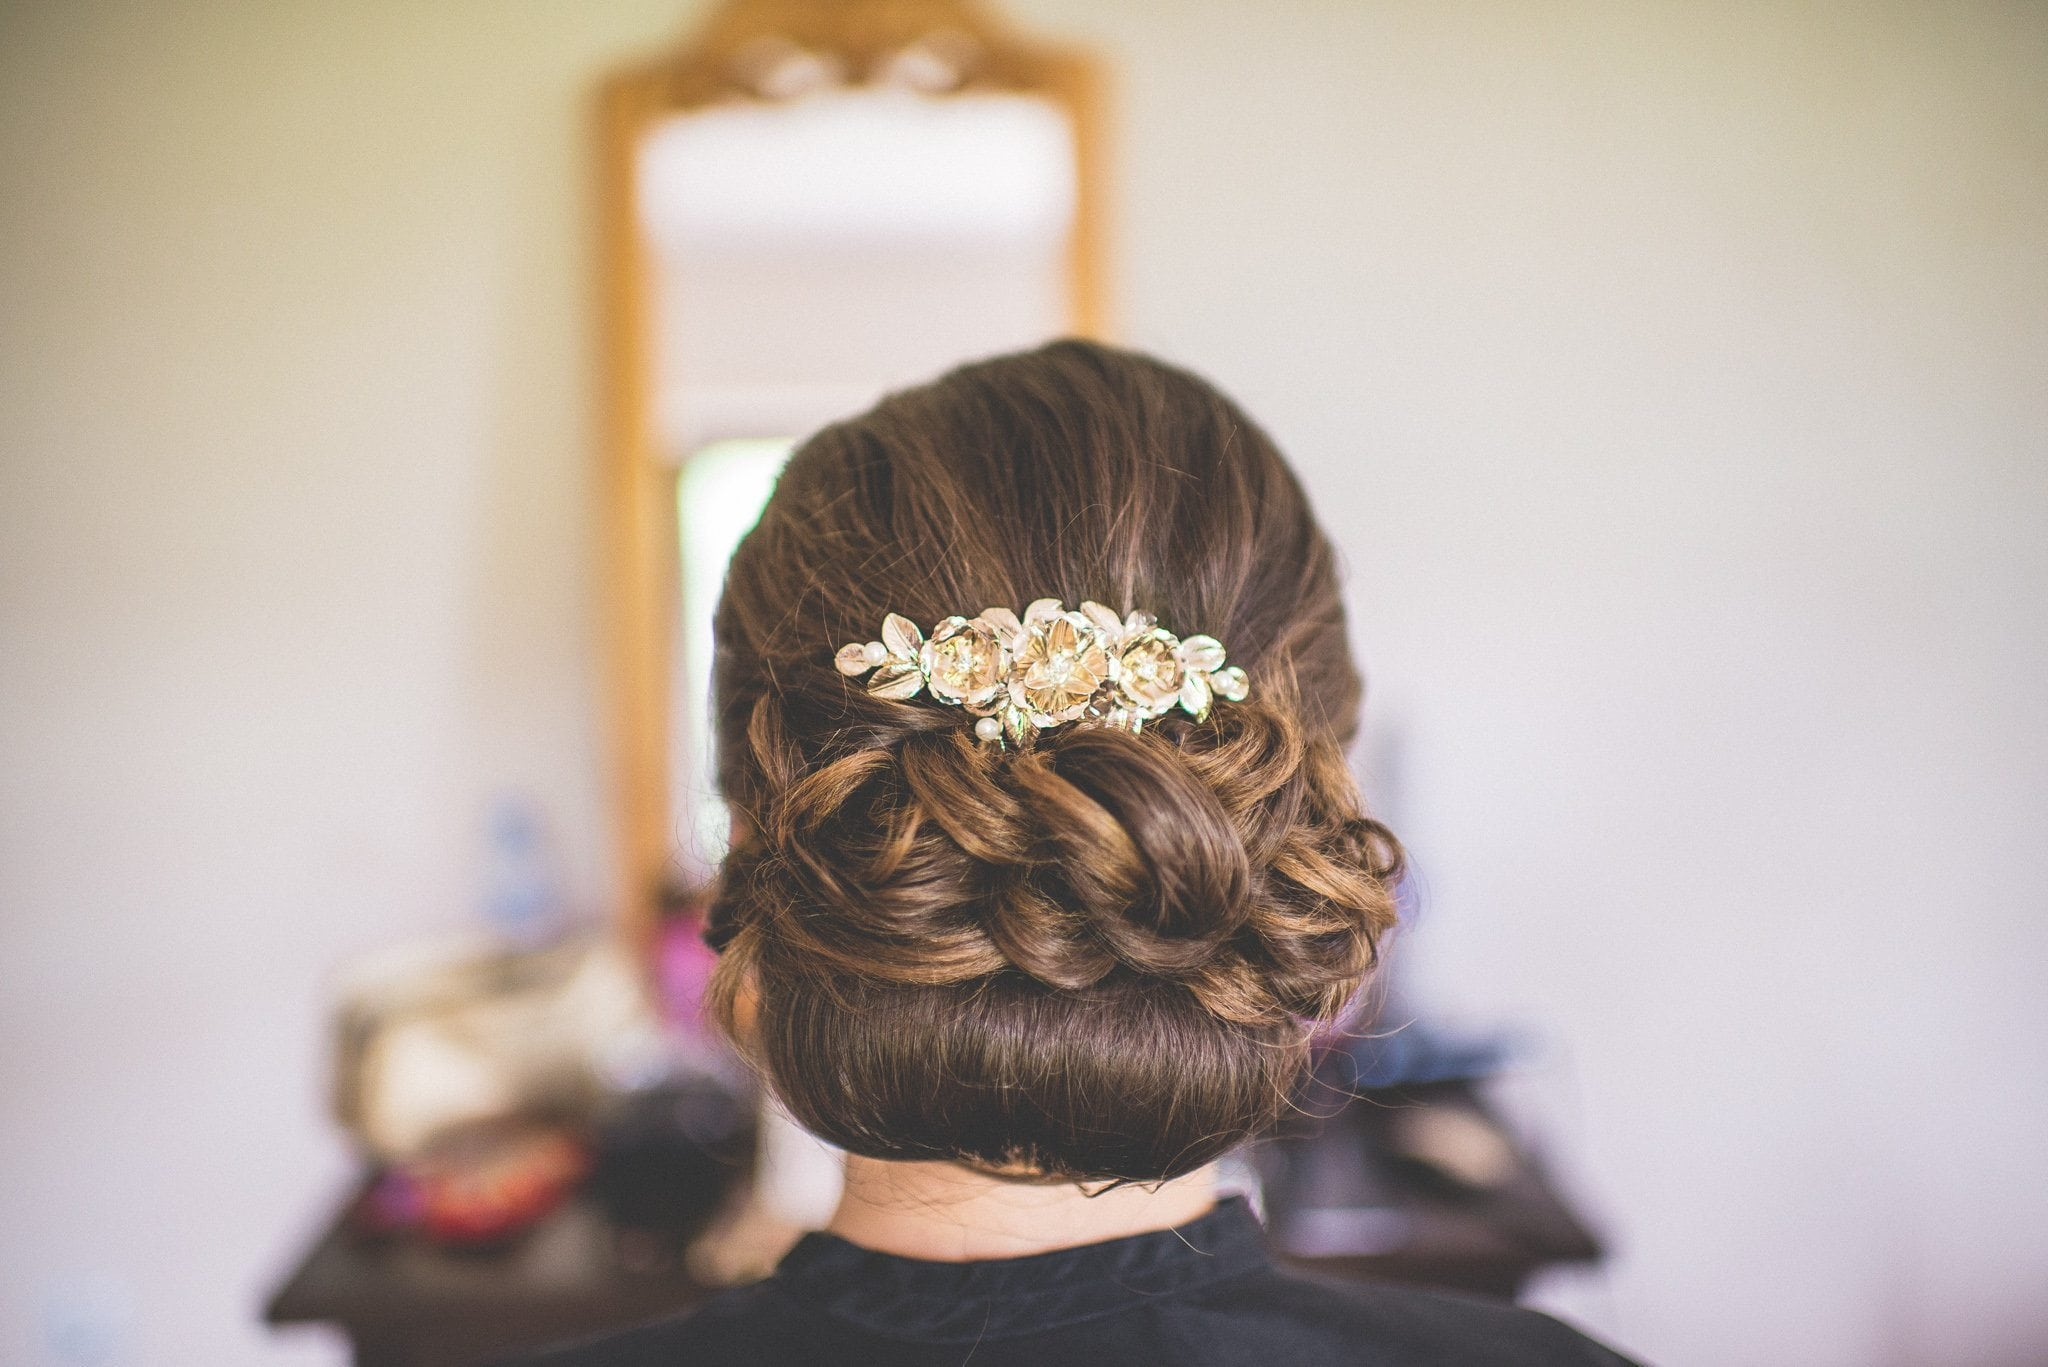 A shot of Elisaveta's finished hairstyle with a beautiful gold floral comb